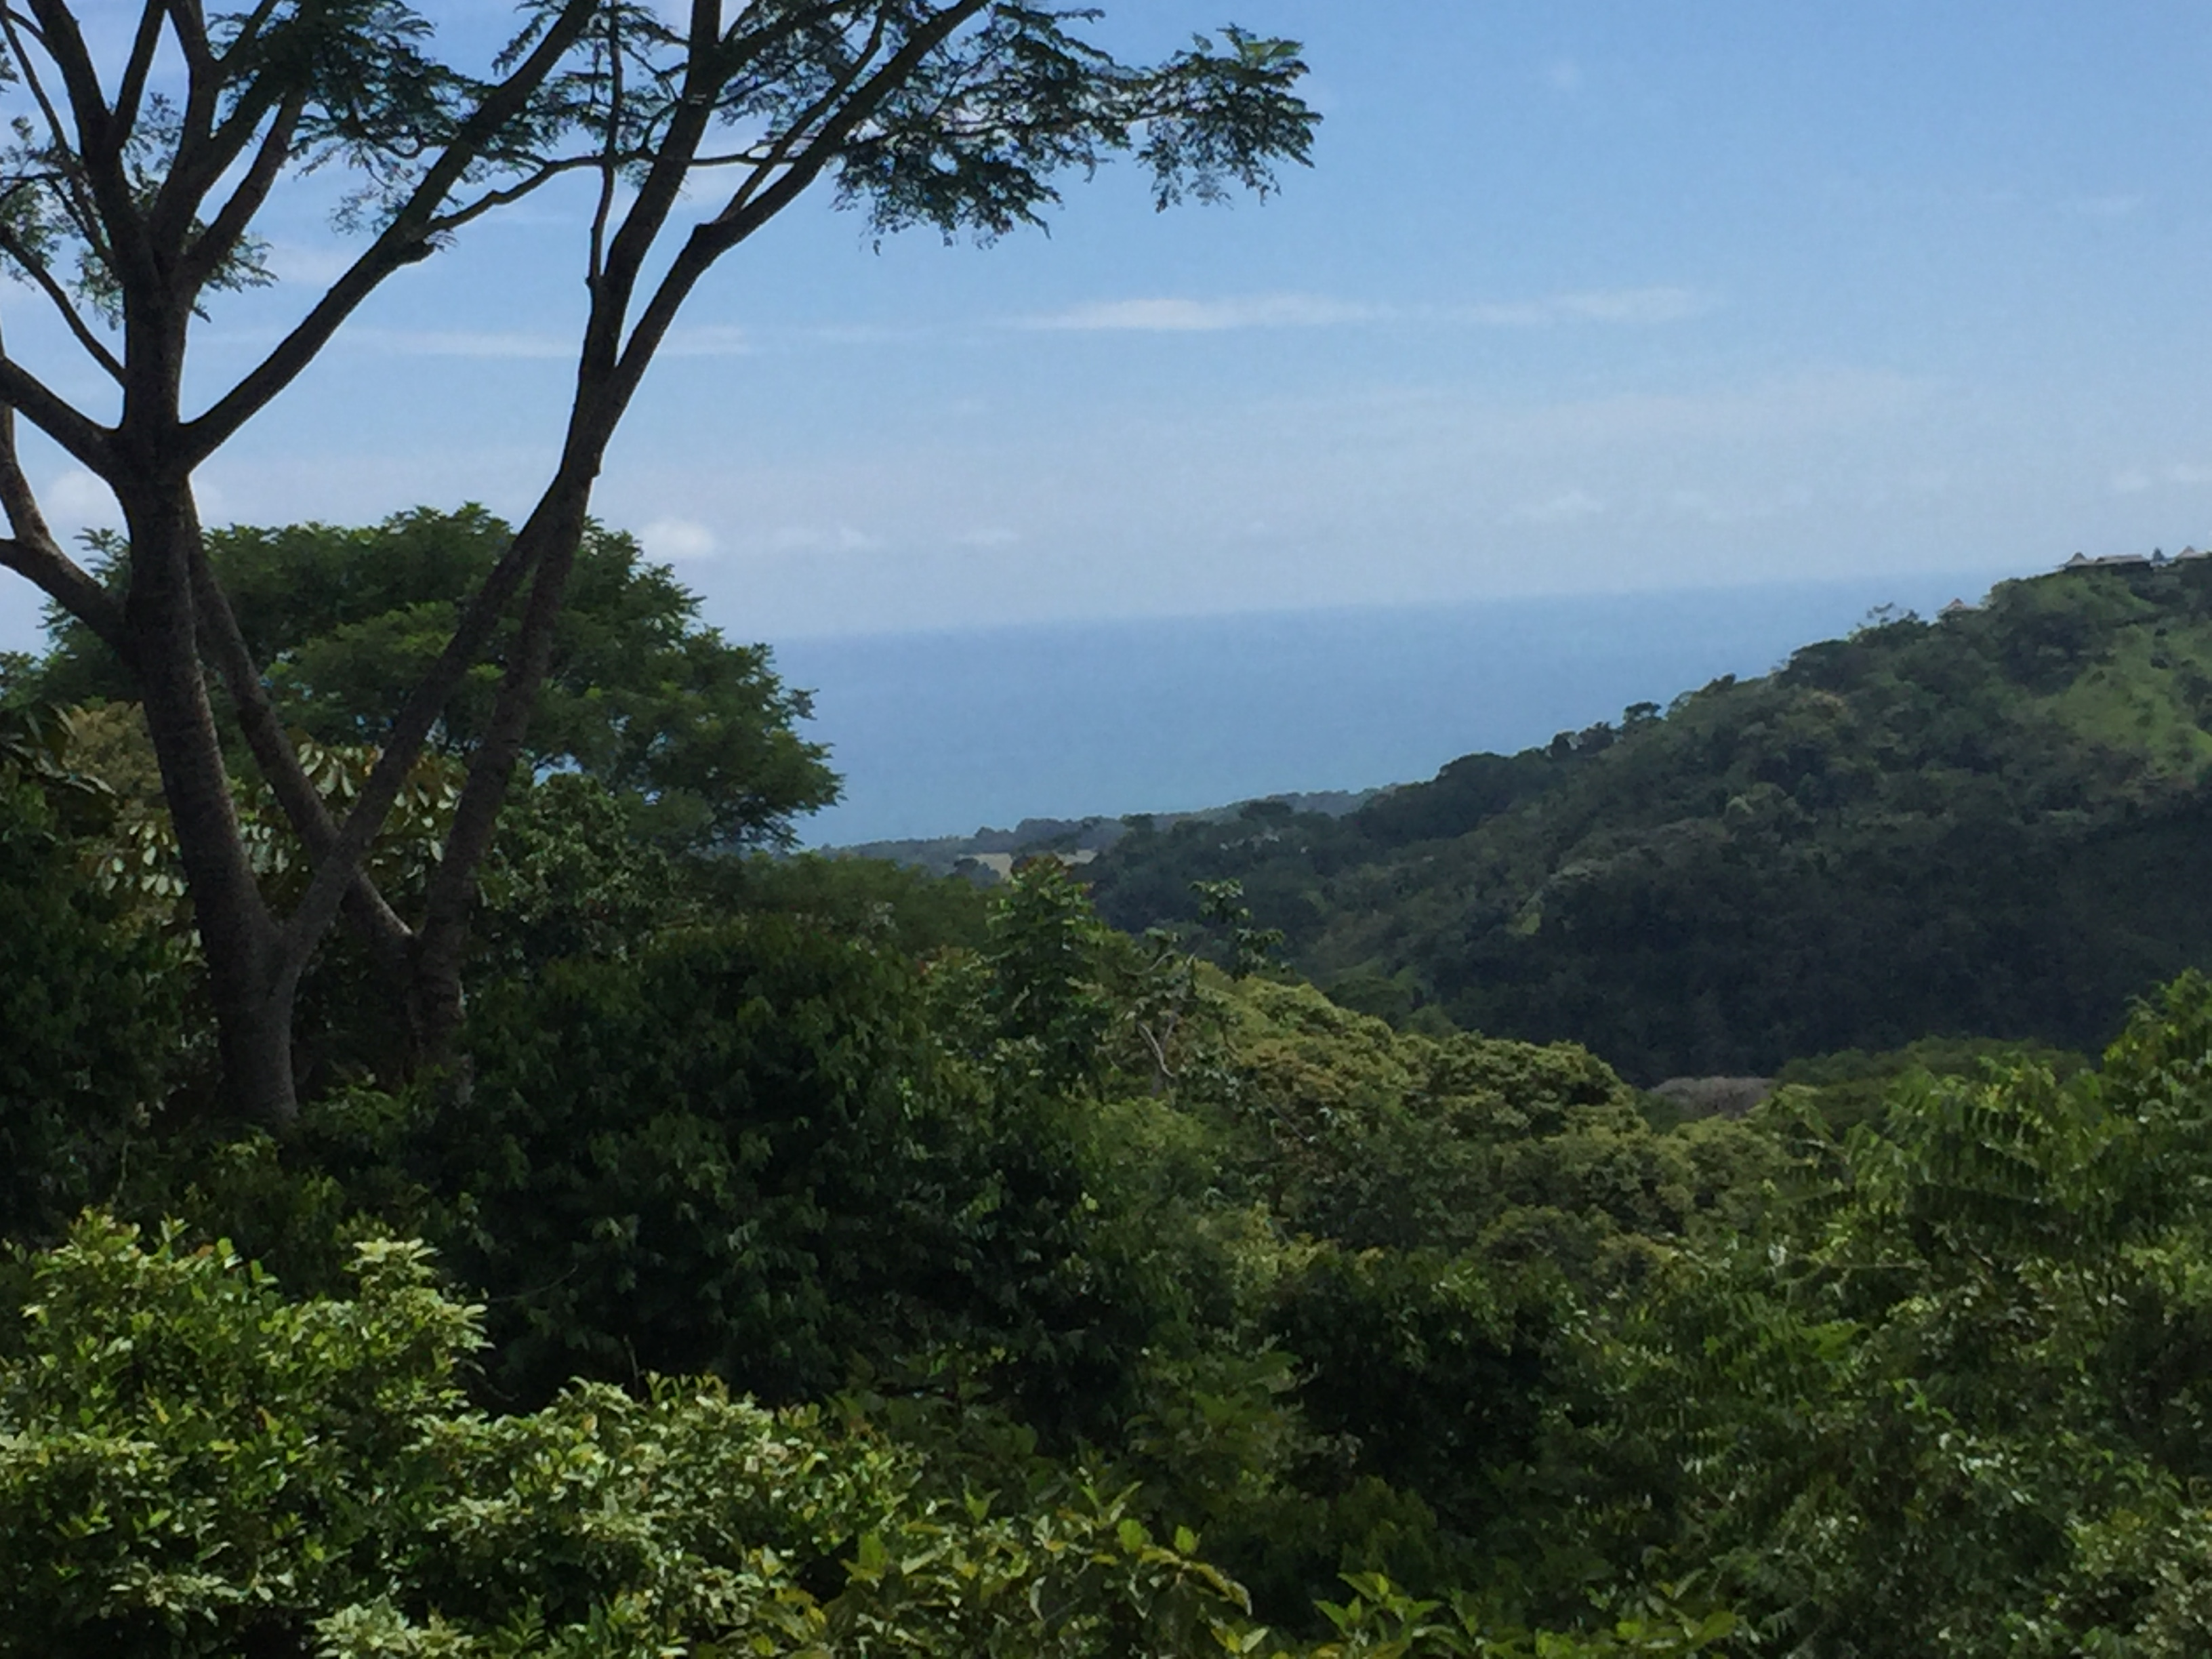 2.7 ACRES - 2 Bedroom Ocean View Home In Lagunas For A Great Price!!!